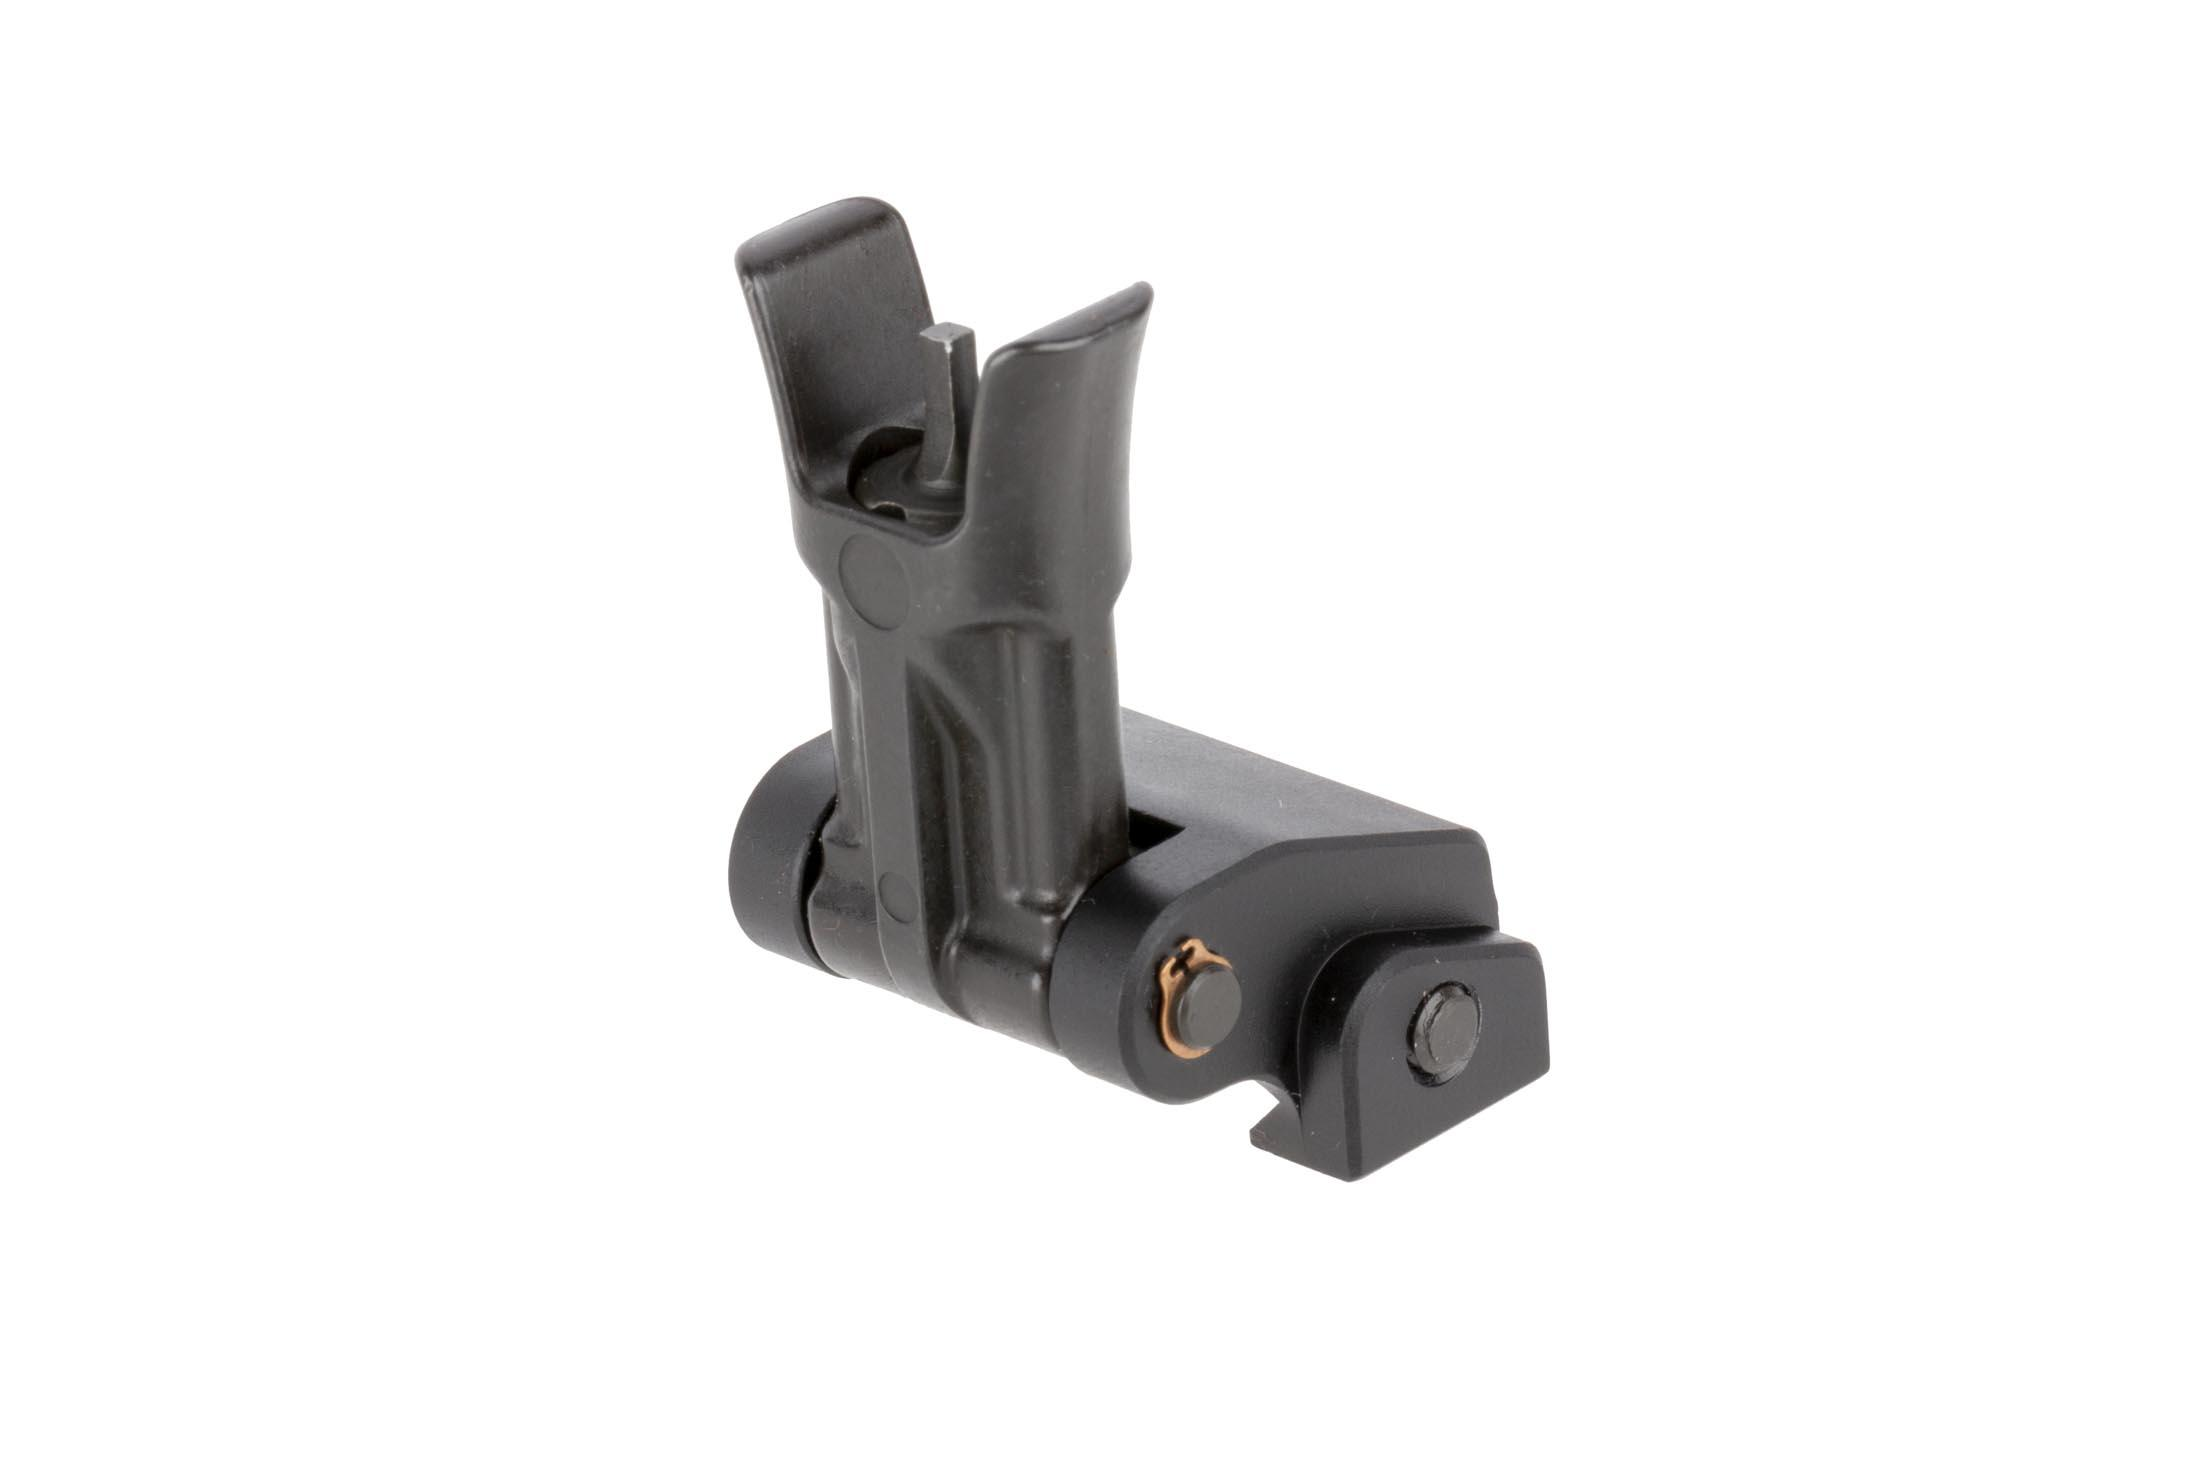 Midwest Industry Combat Rifle front sight uses standard A2 front sight posts for your favorite upgrades and sight tools